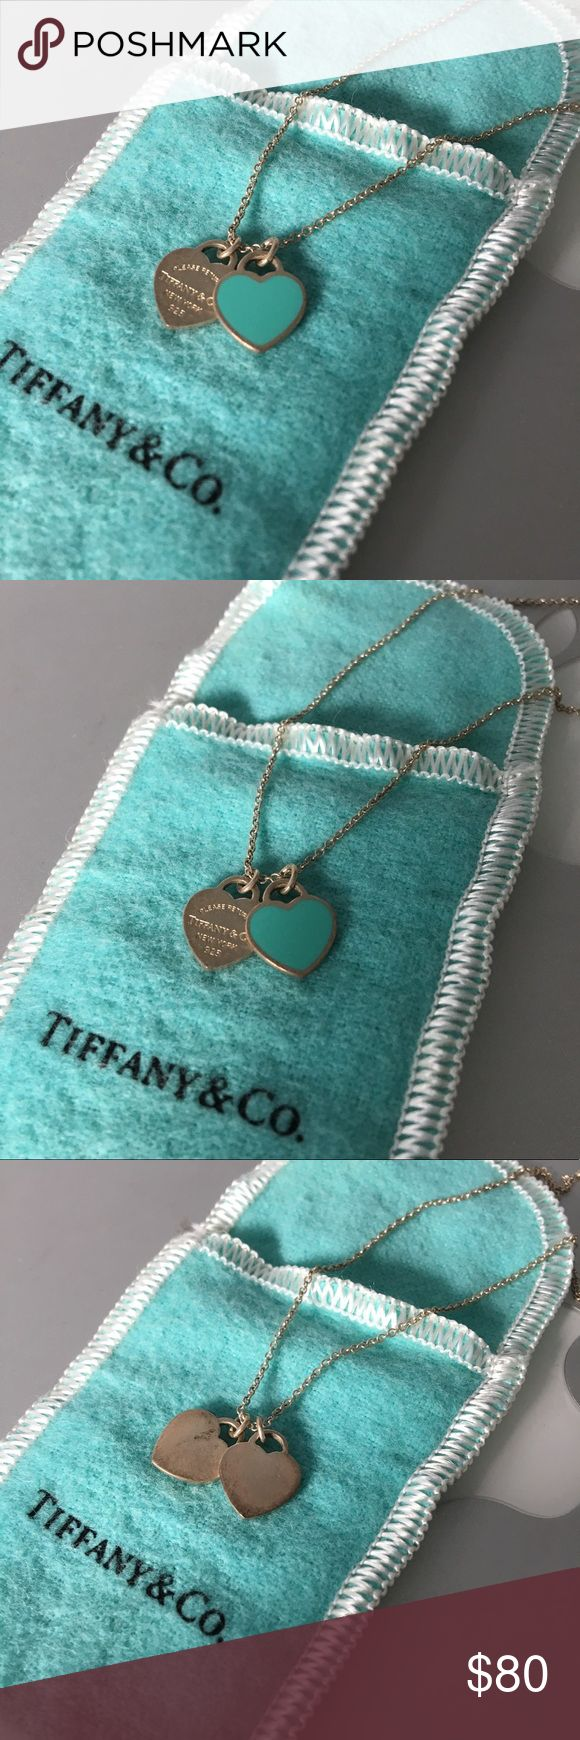 Authentic Tiffany & Co. Silver Heart Necklace Silver Tiffany hearts necklace. They are a little oxidized which you can see from the photos which is why they start to look brownish but if you take it to any Tiffany's store they will clean them for free for you and look good as new. I just have not had time to go. I am also selling them for cheaper through Mercari or Venmo! Tiffany & Co. Jewelry Necklaces